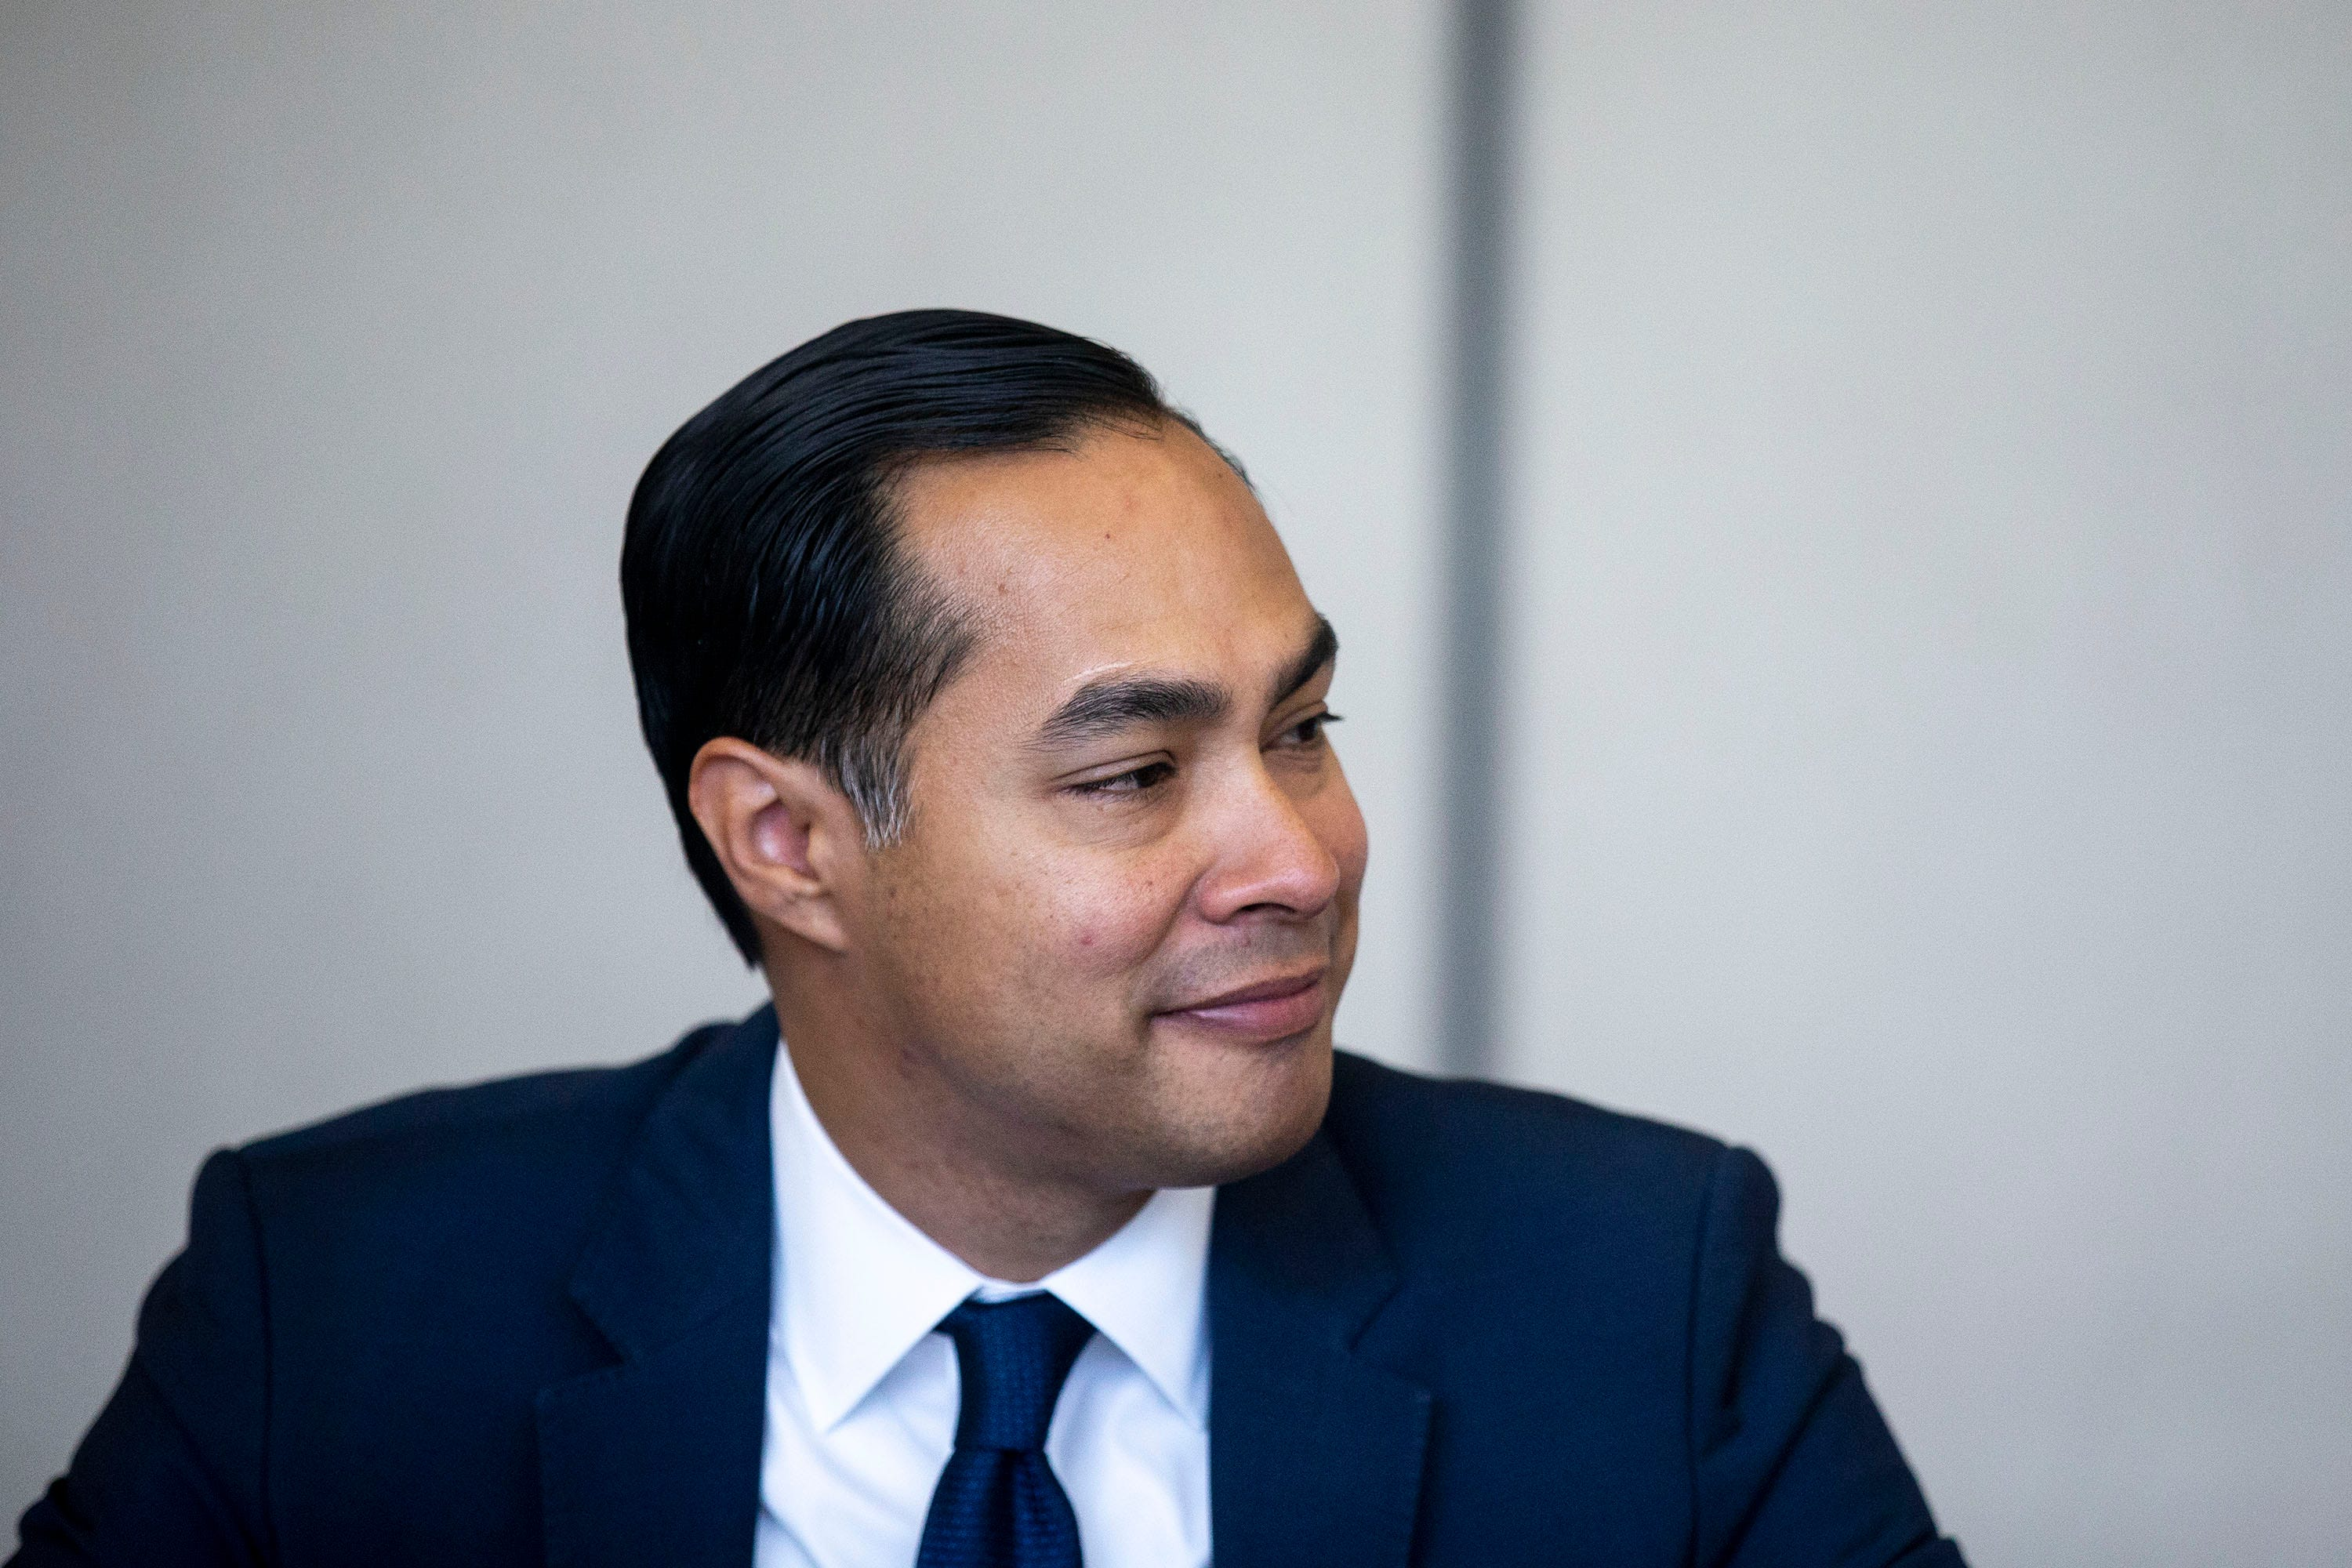 Julián Castro places bet on reaching marginalized communities — both rural and non-white — before Iowa caucuses